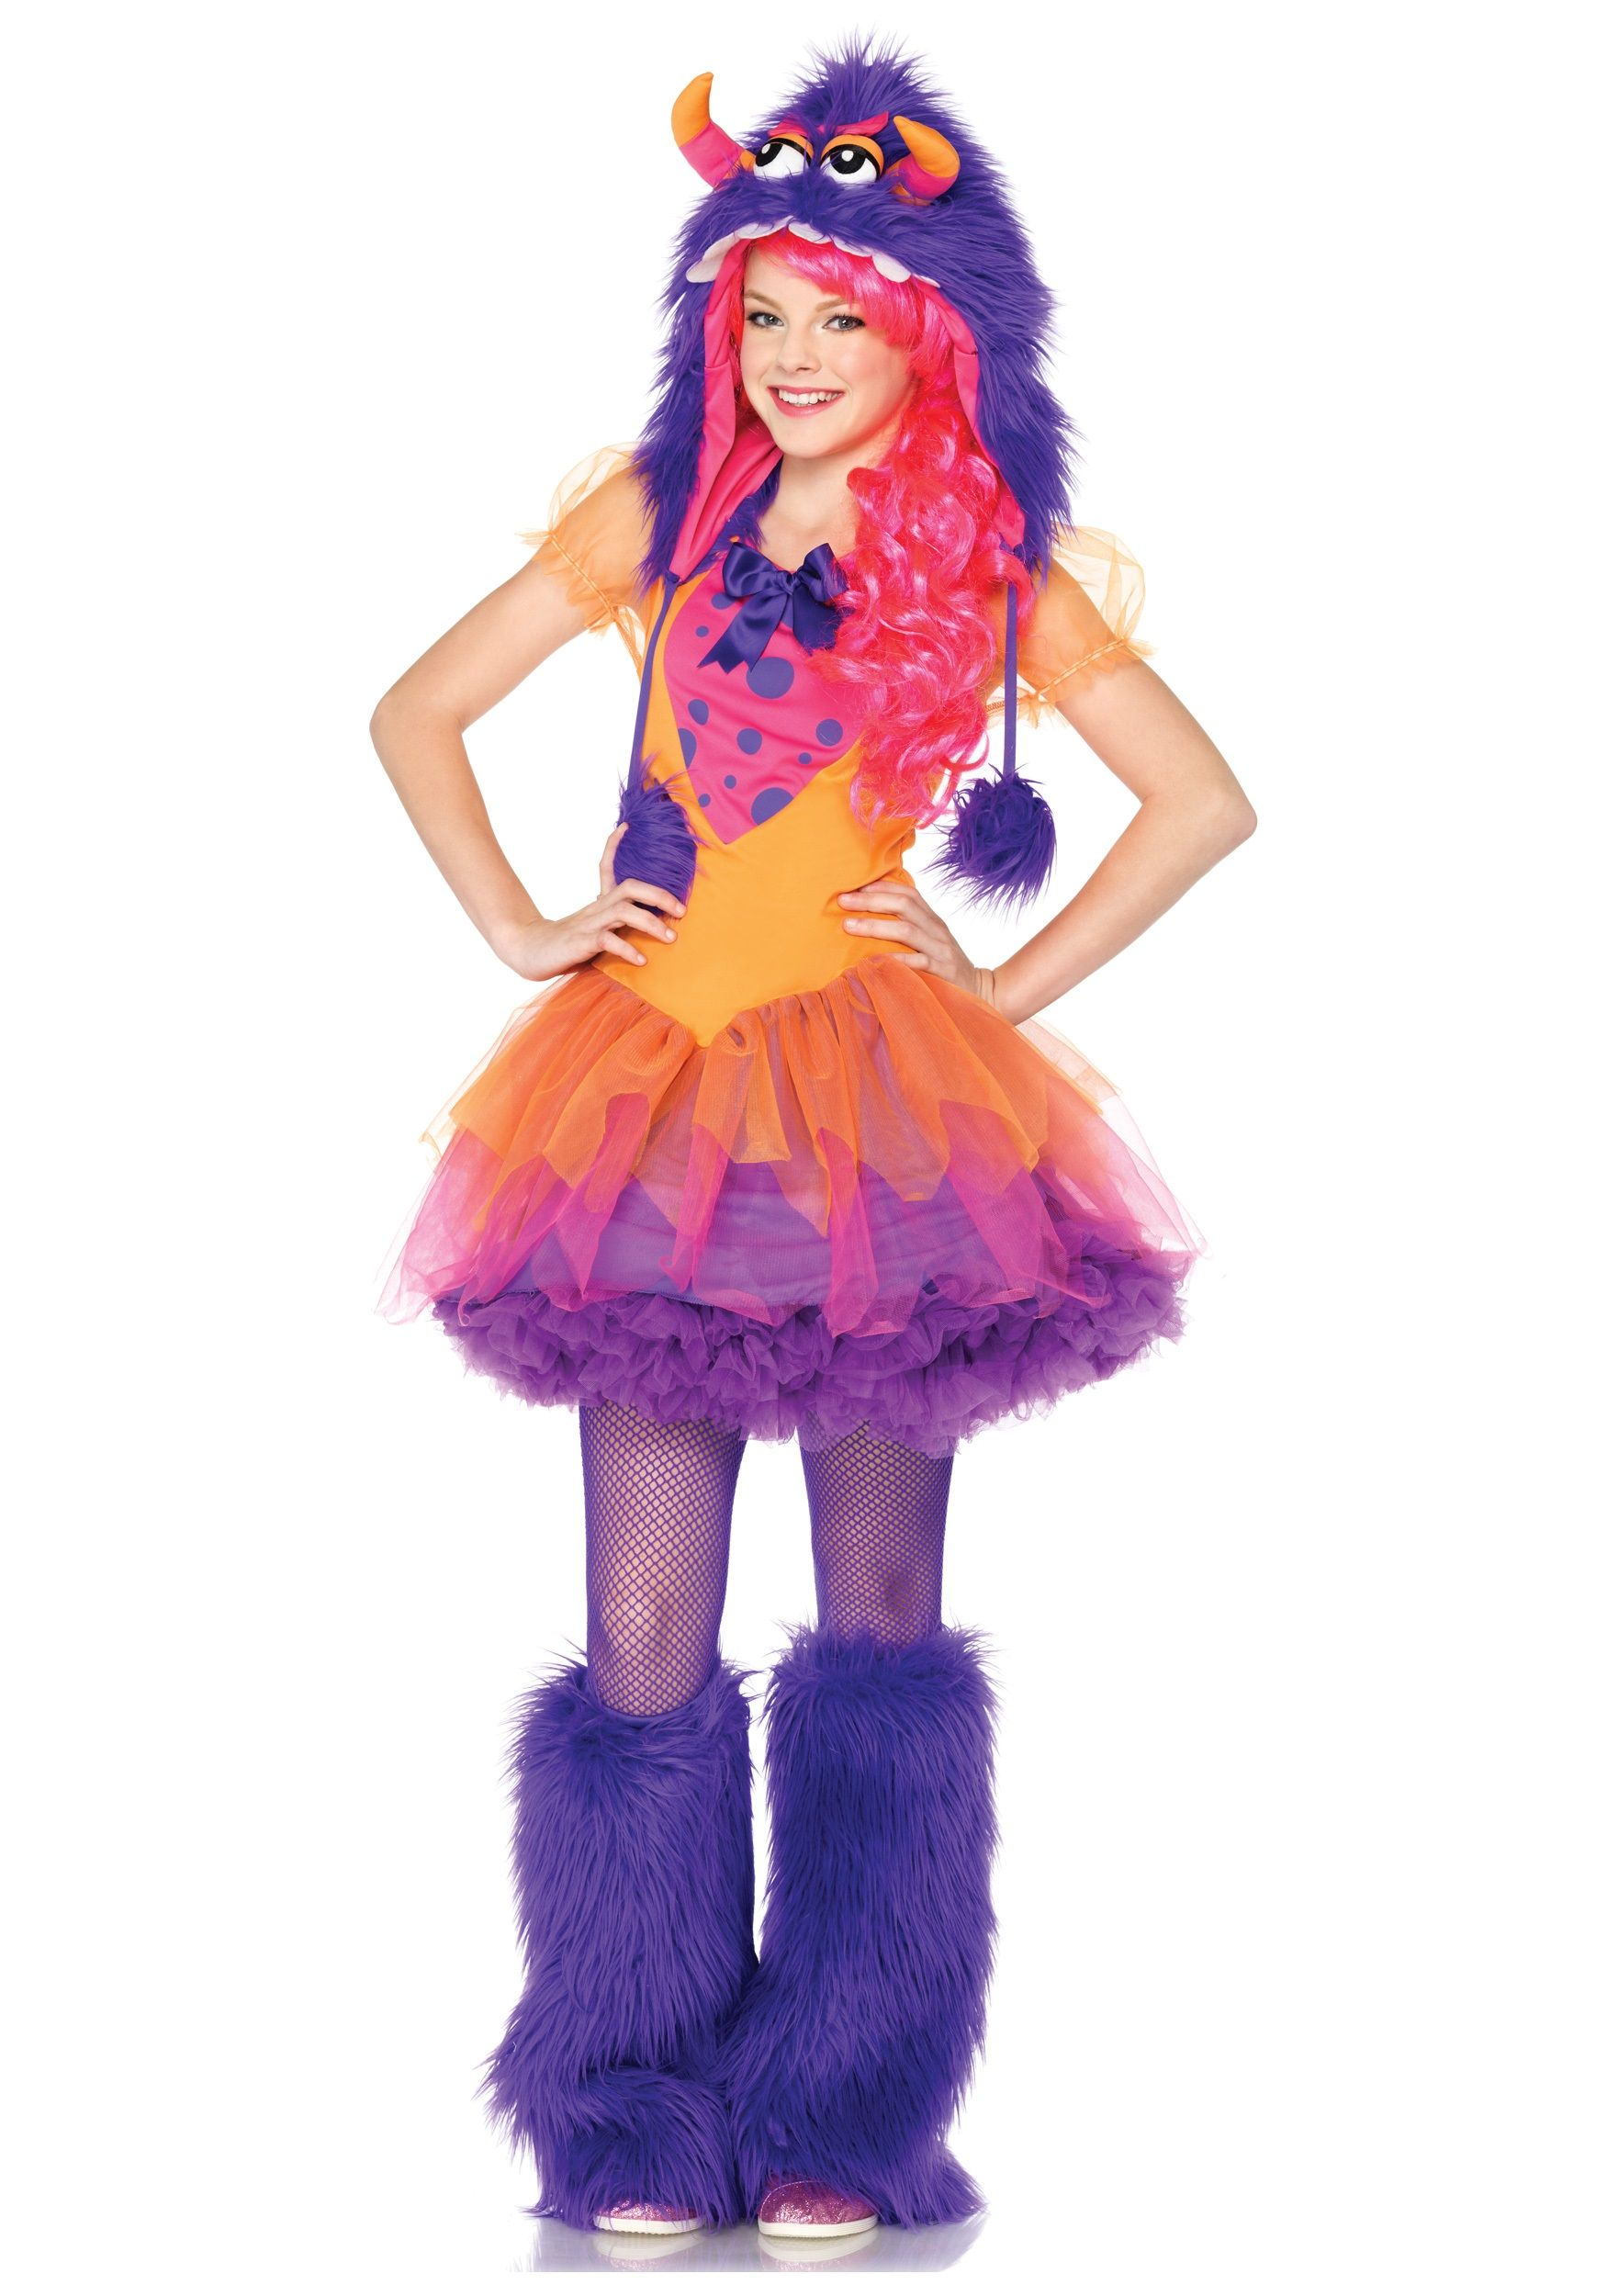 costume for teen girls | Cute Teen Girl Halloween Costume Ideas ...